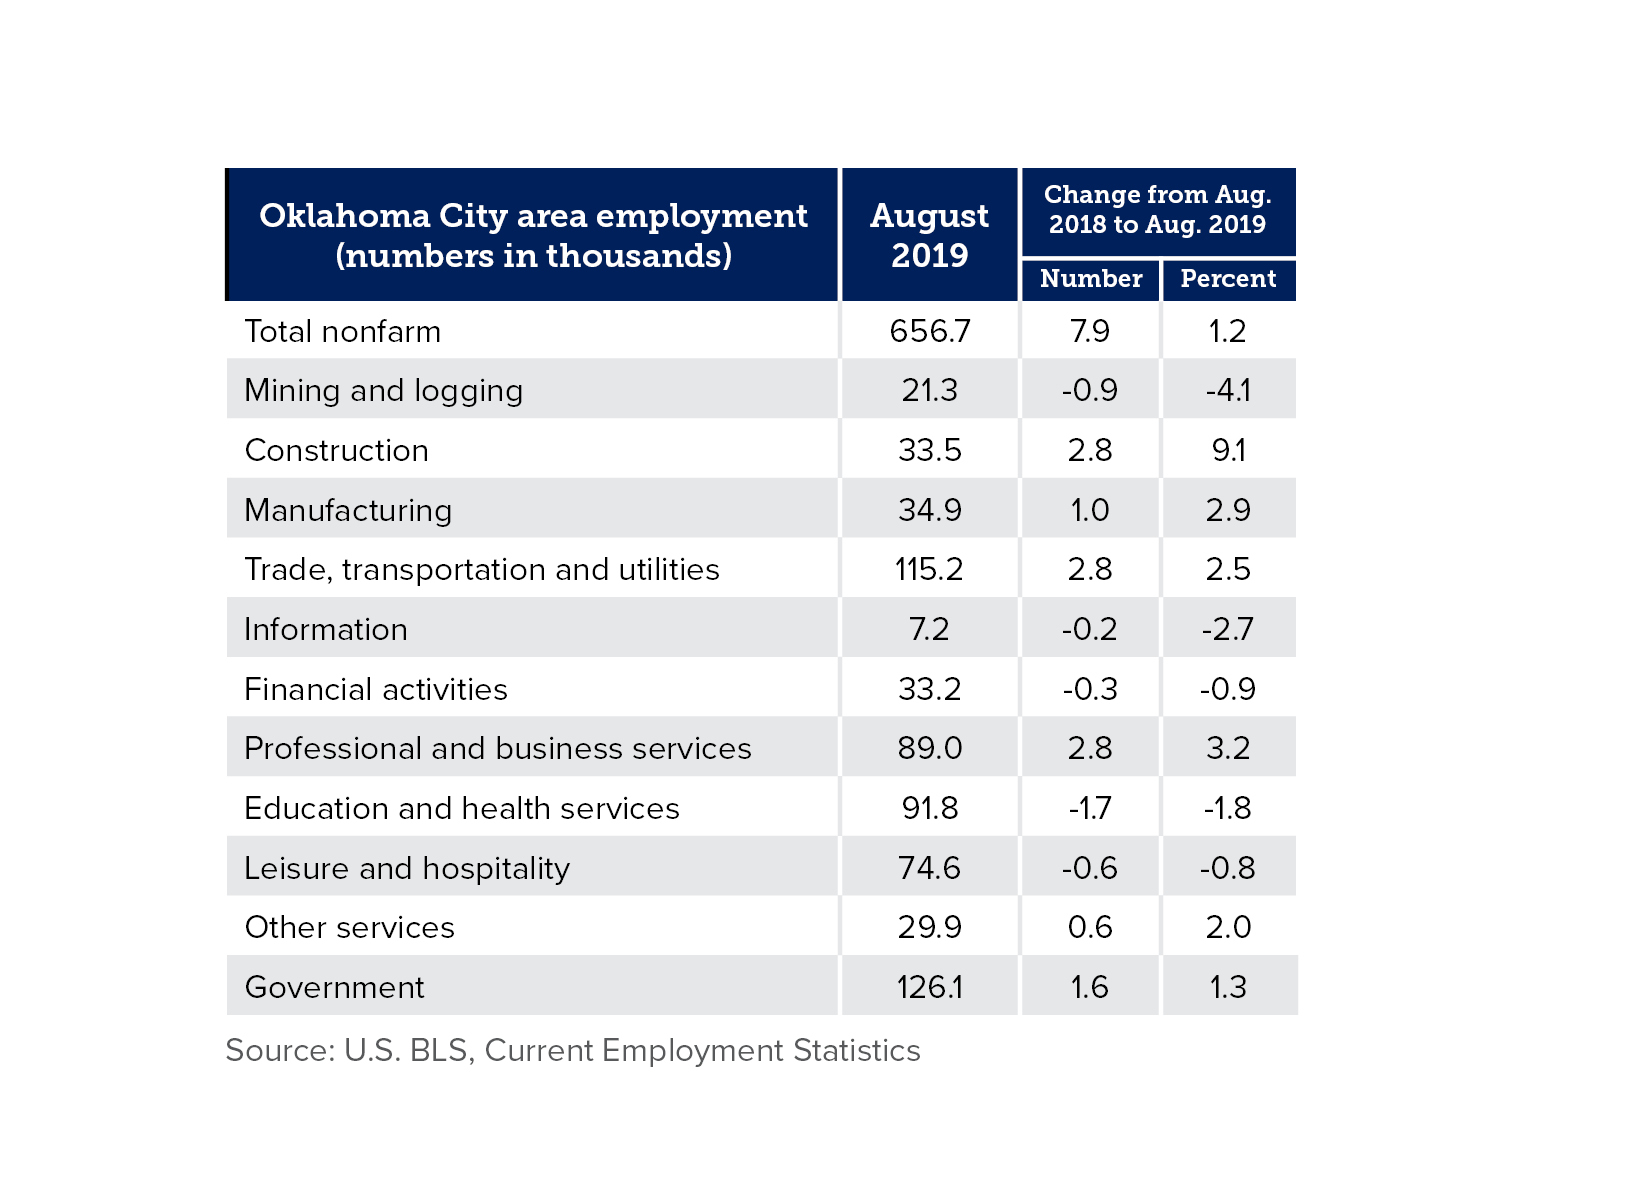 Chart defining Oklahoma City area employment by industry in August 2019